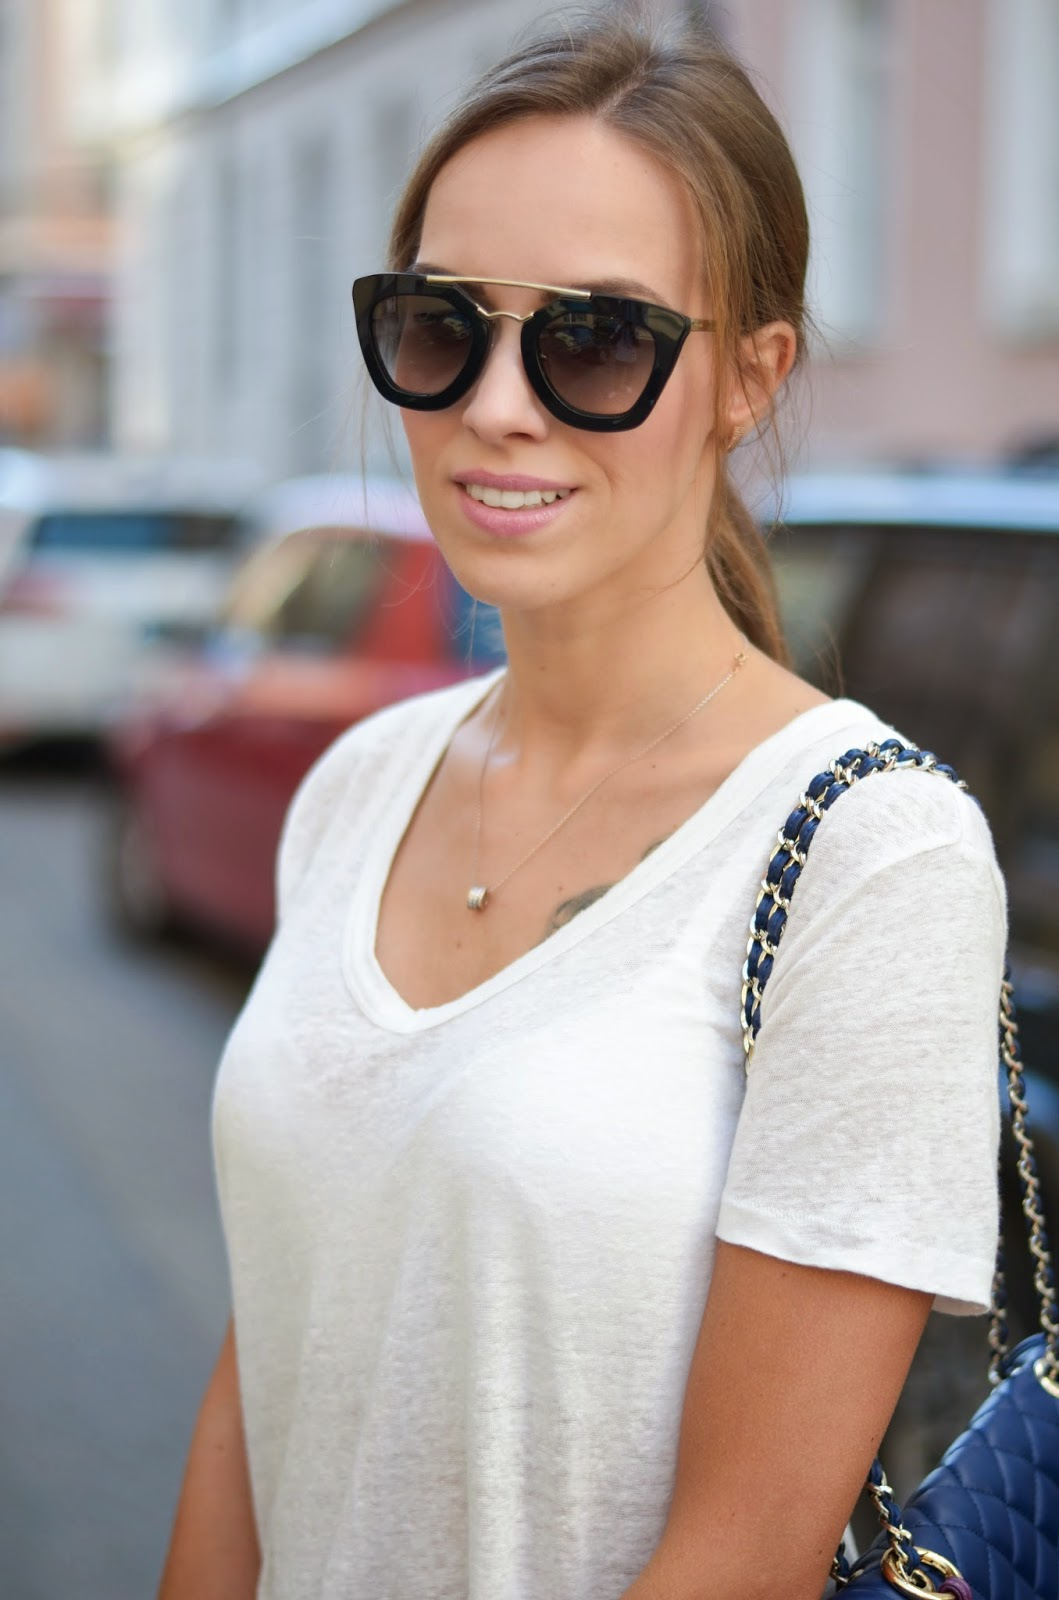 kristjaana mere white t-shirt prada black retro sunglasses moschino blue bag